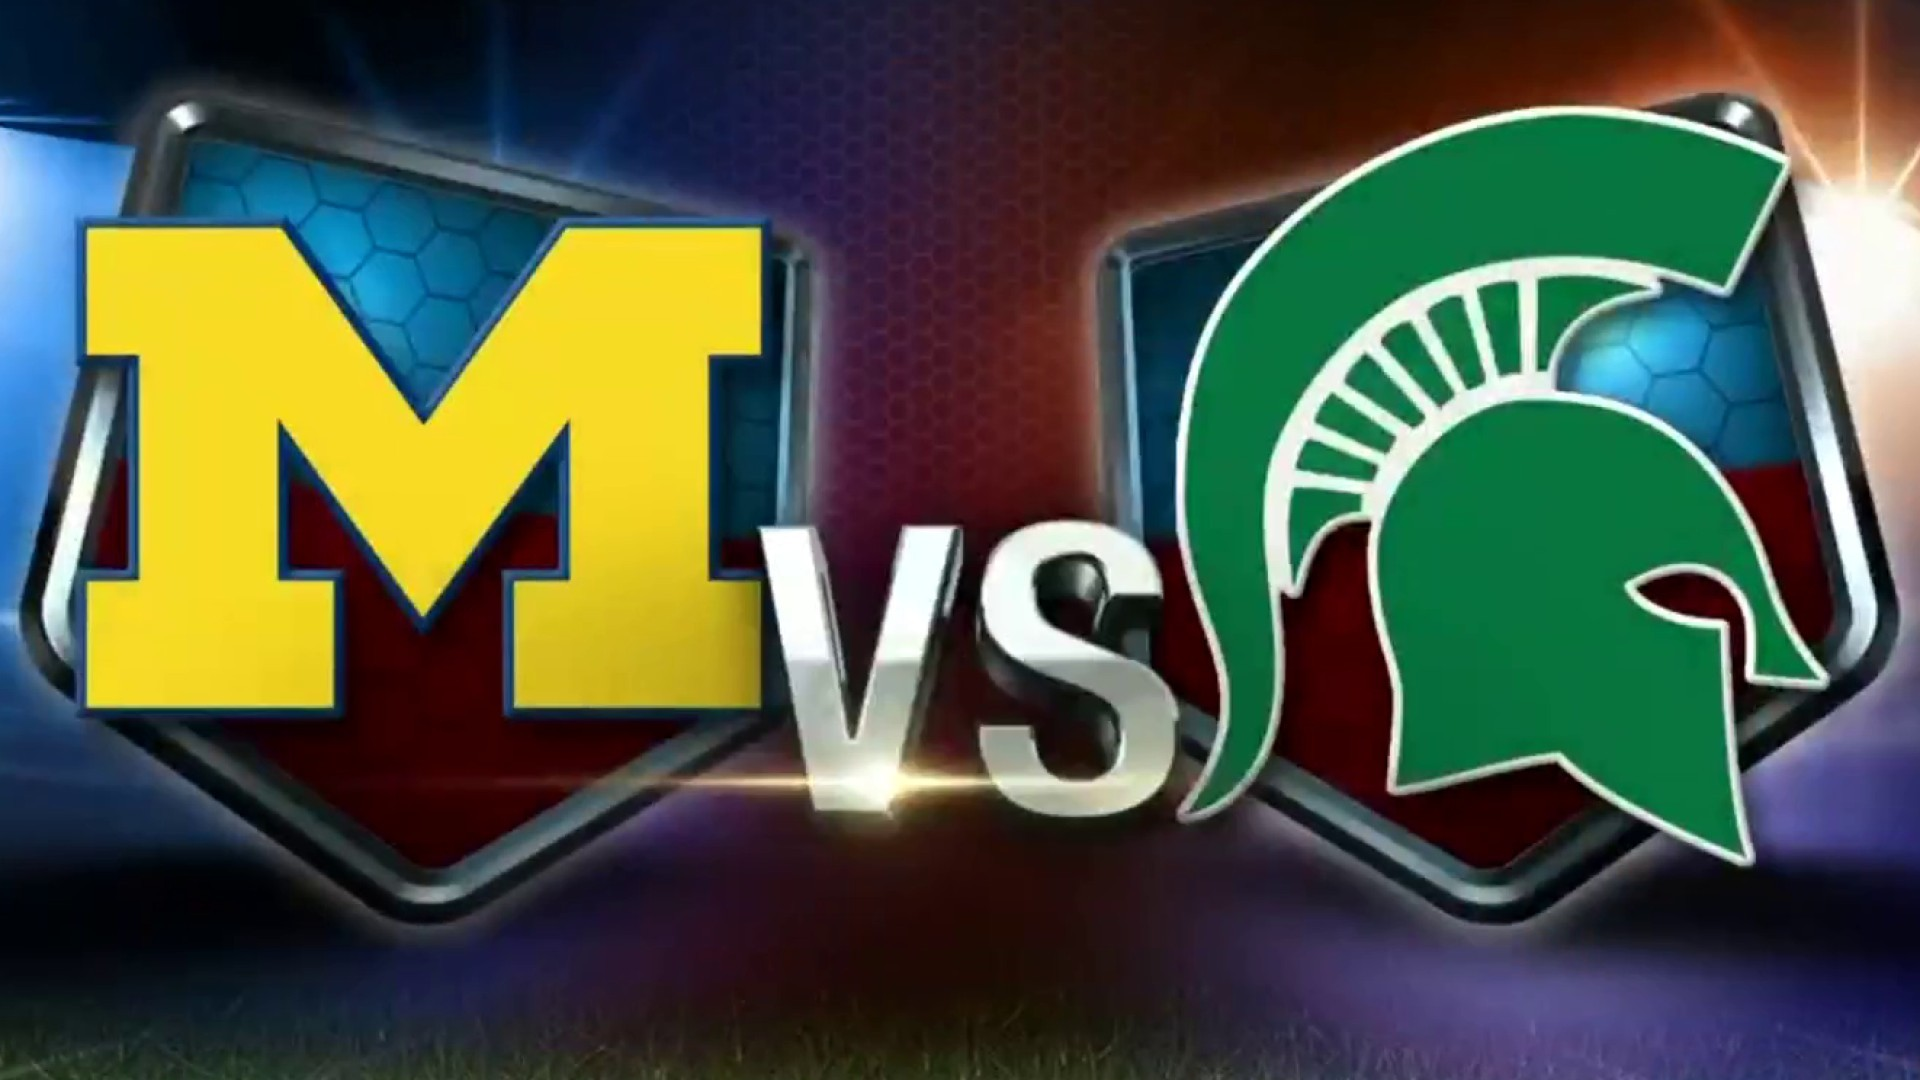 [NCAA] La rivalità della settimana: Michigan Wolverines vs Michigan State Spartans